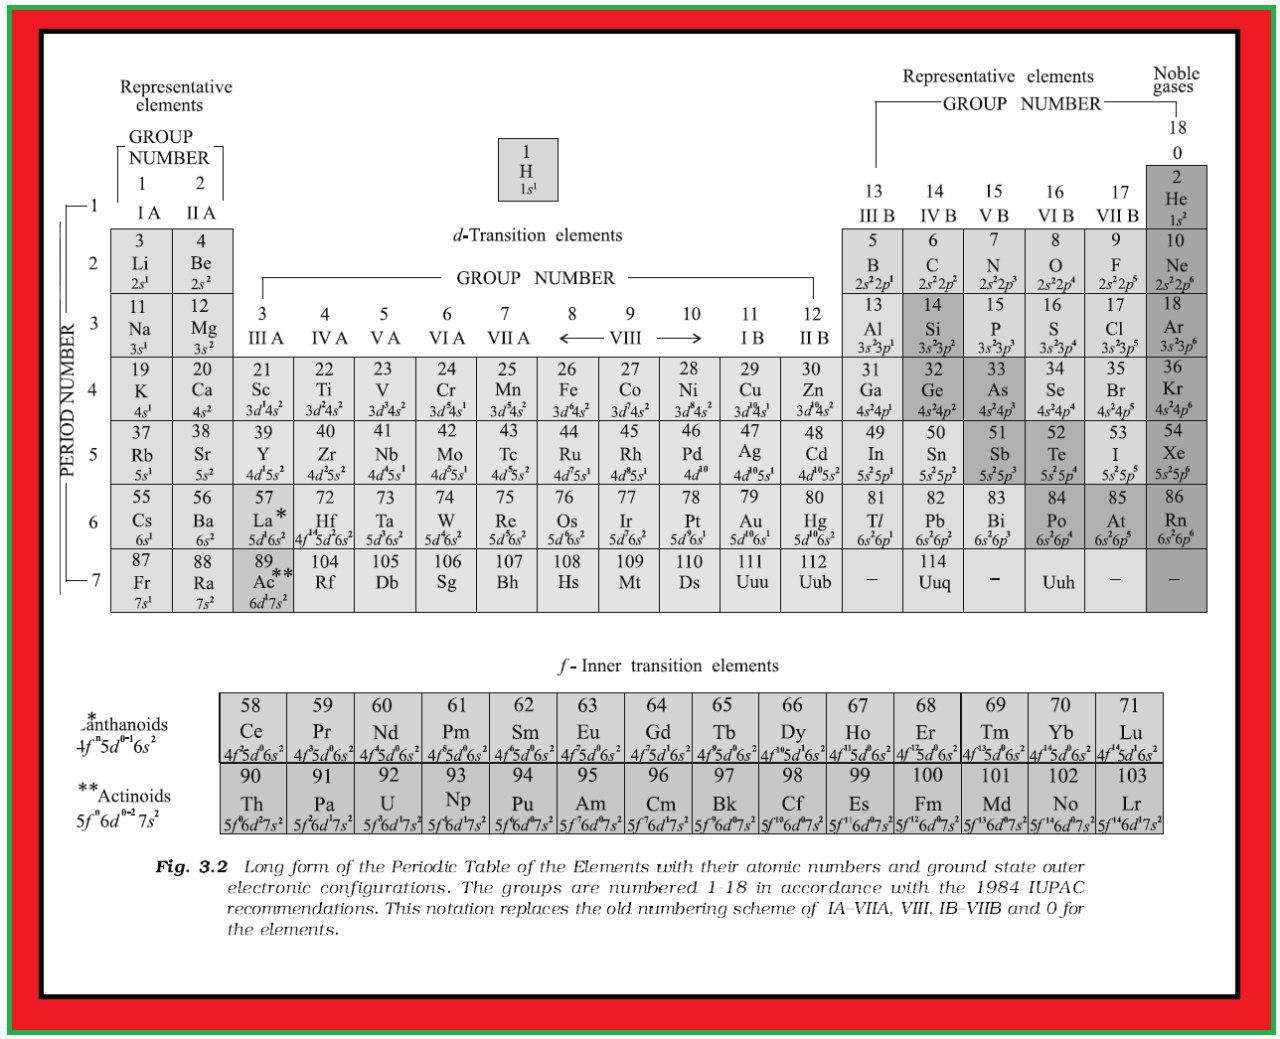 Periodic table of elements with groups image collections periodic table of elements with groups images periodic table images tm periodic table image collections periodic gamestrikefo Image collections